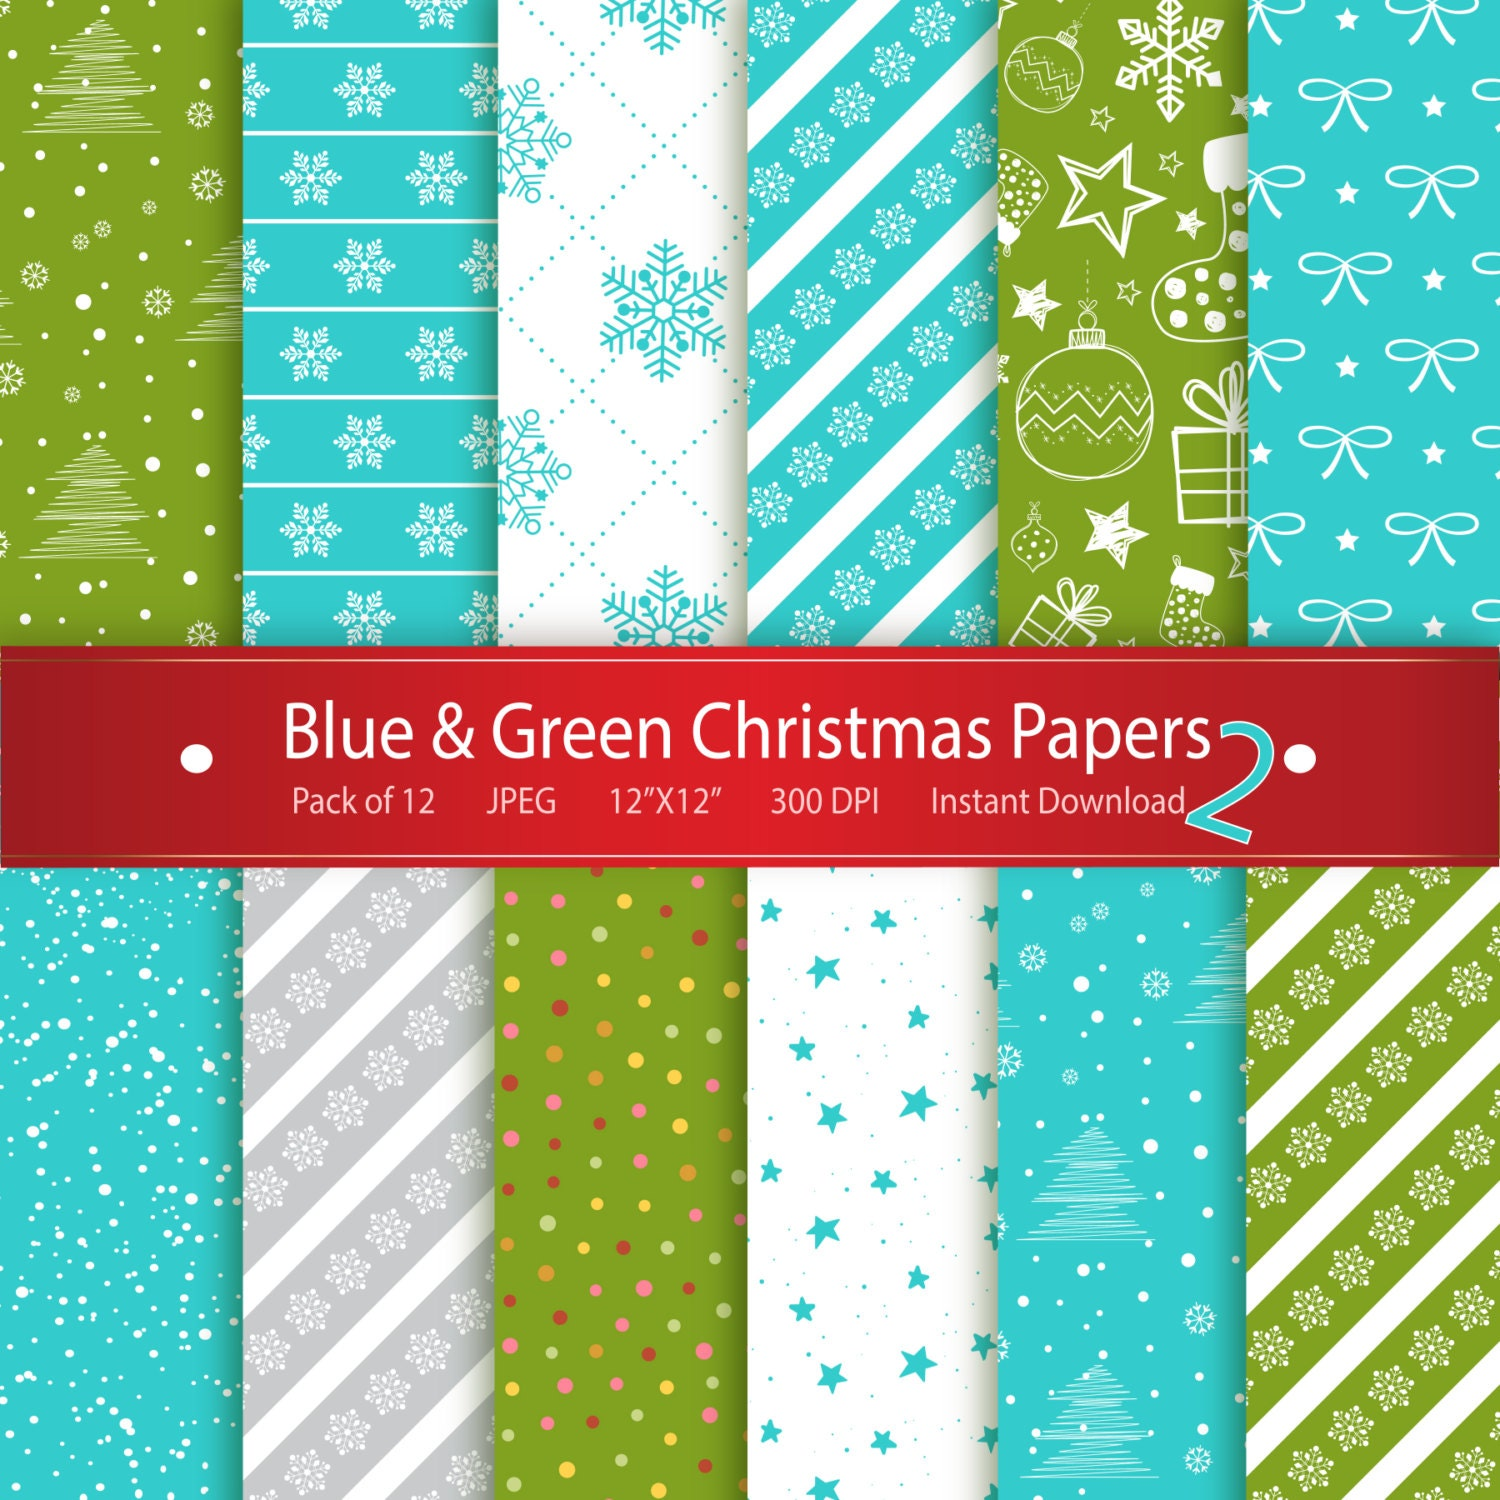 Scrapbook ideas video download - Christmas Digital Paper Blue Green Christmas Papers 2 Instant Download Printable Scrapbooking Collection Stars Snowflakes Xmas Tree